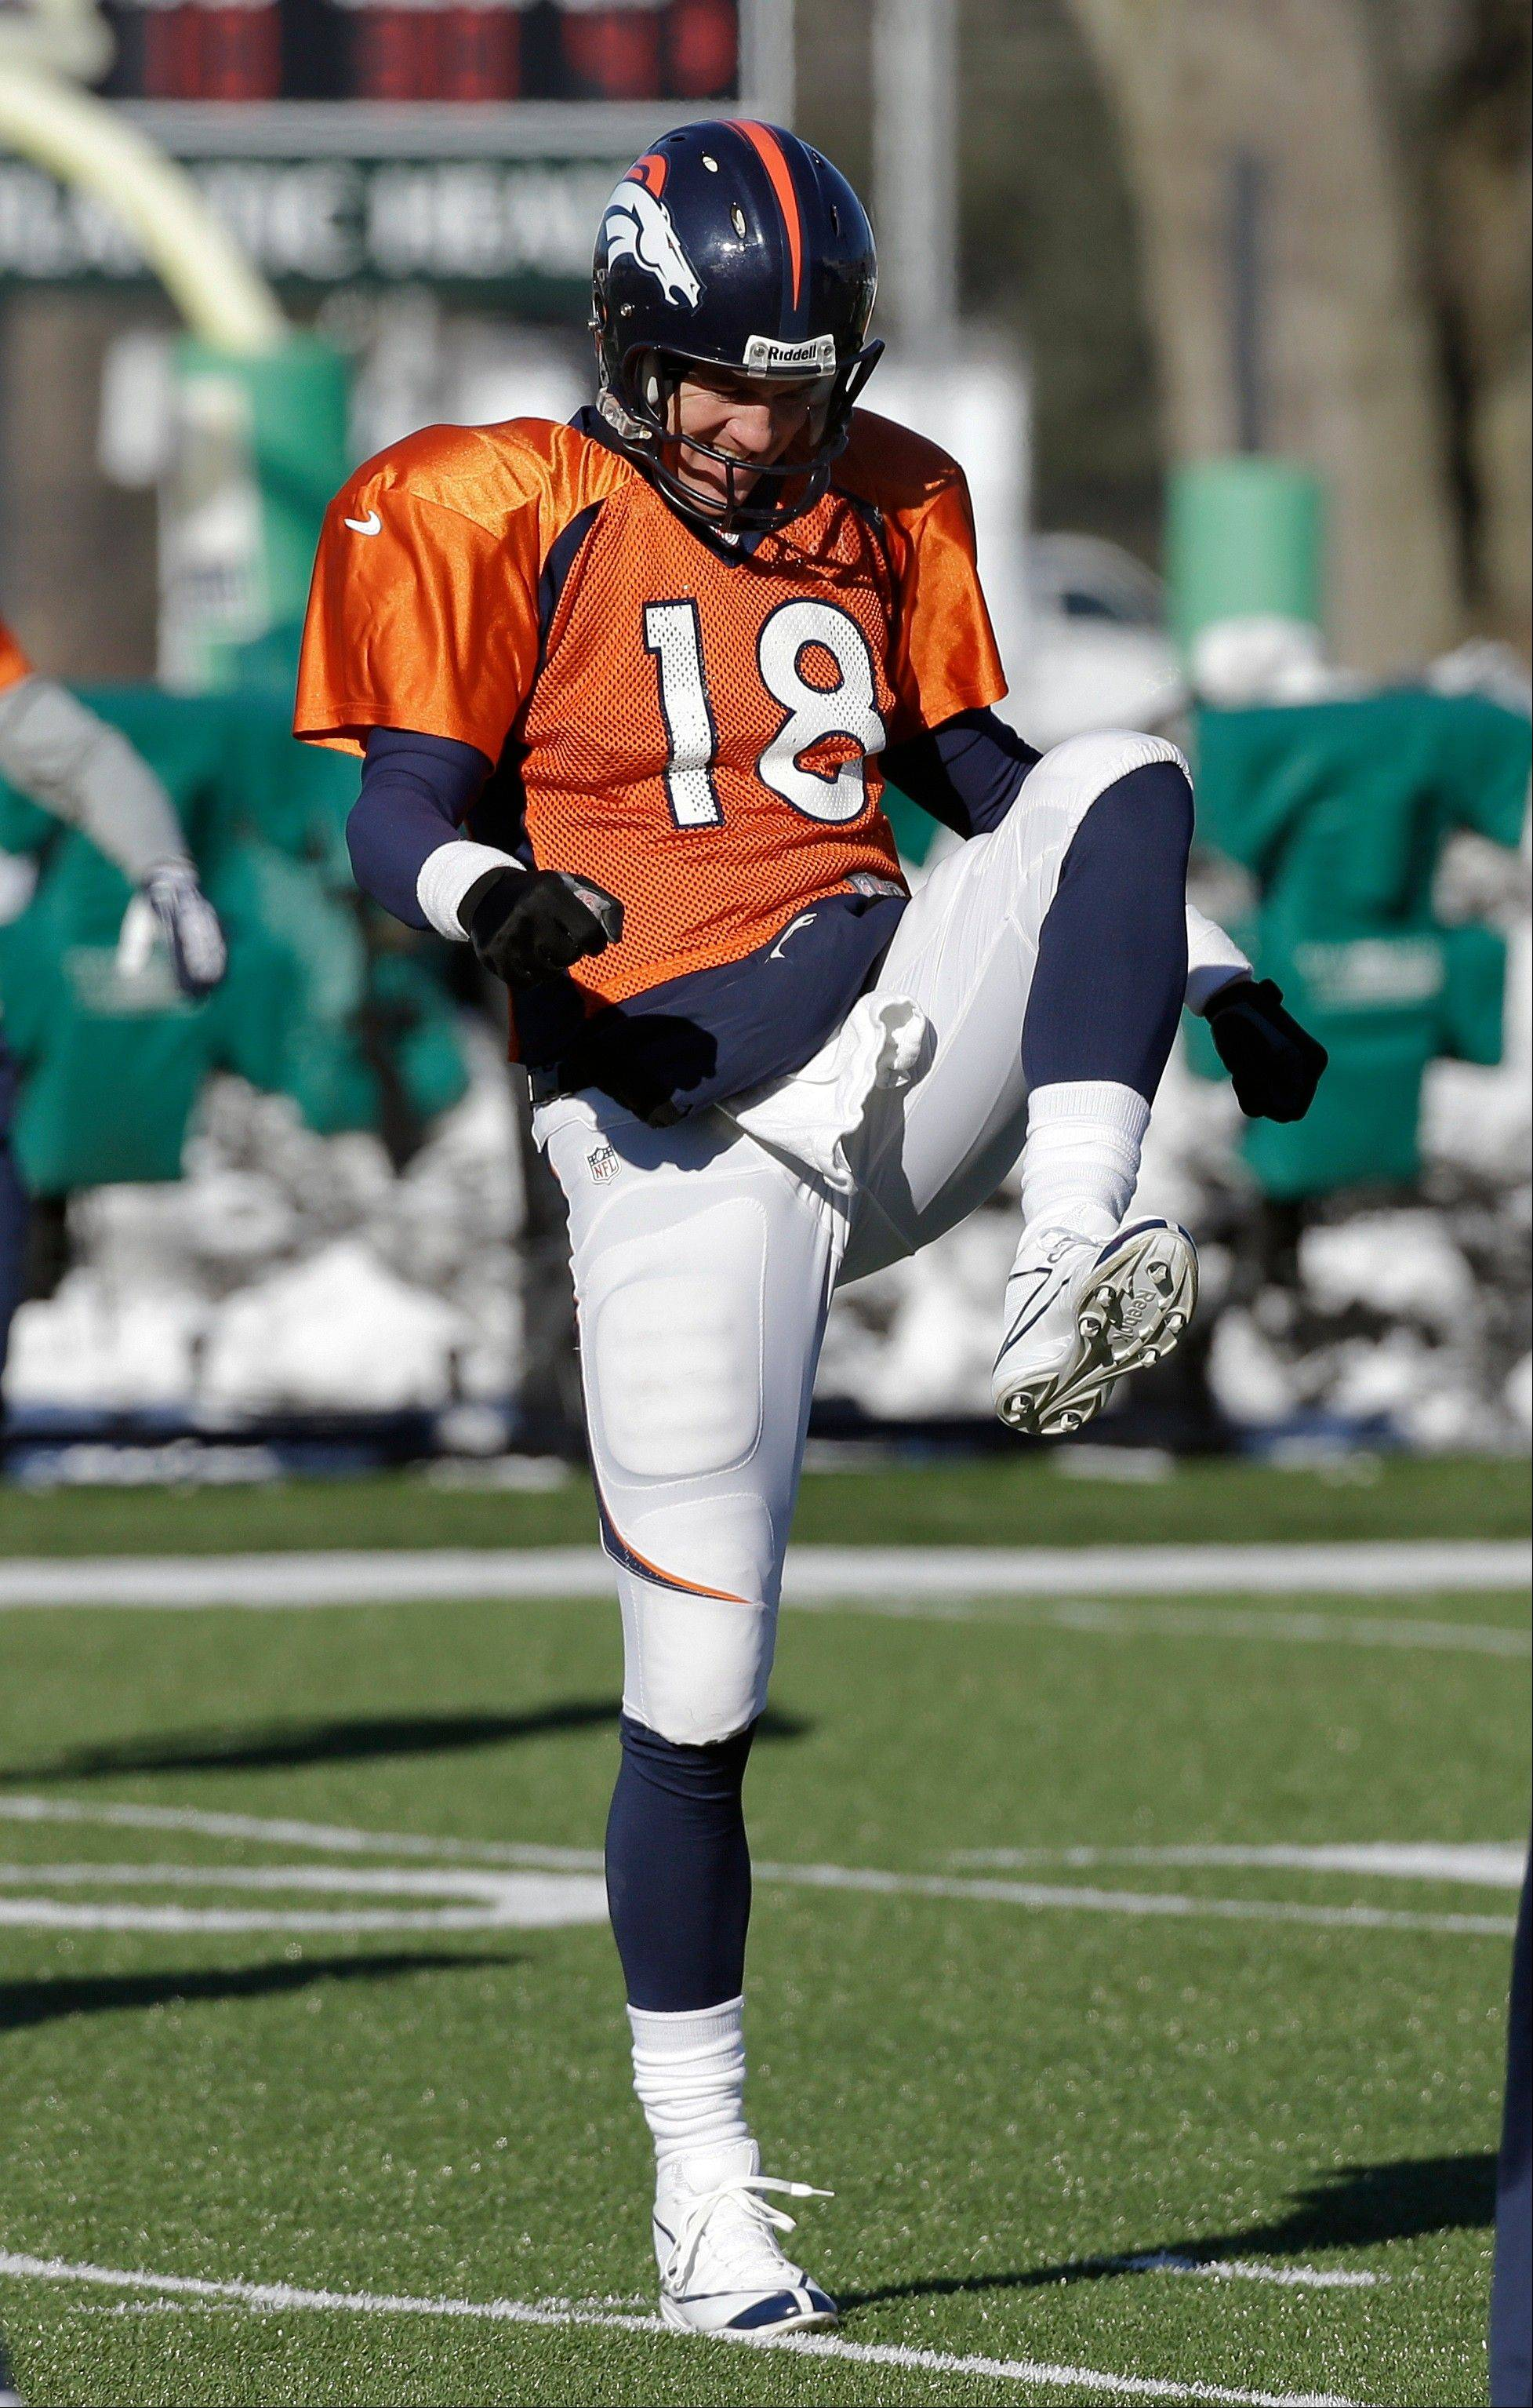 Denver Broncos quarterback Peyton Manning stretches during practice Wednesday, Jan. 29, 2014, in Florham Park, N.J. The Broncos are scheduled to play the Seattle Seahawks in the NFL Super Bowl XLVIII football game Sunday, Feb. 2, in East Rutherford, N.J. (AP Photo/Mark Humphrey)